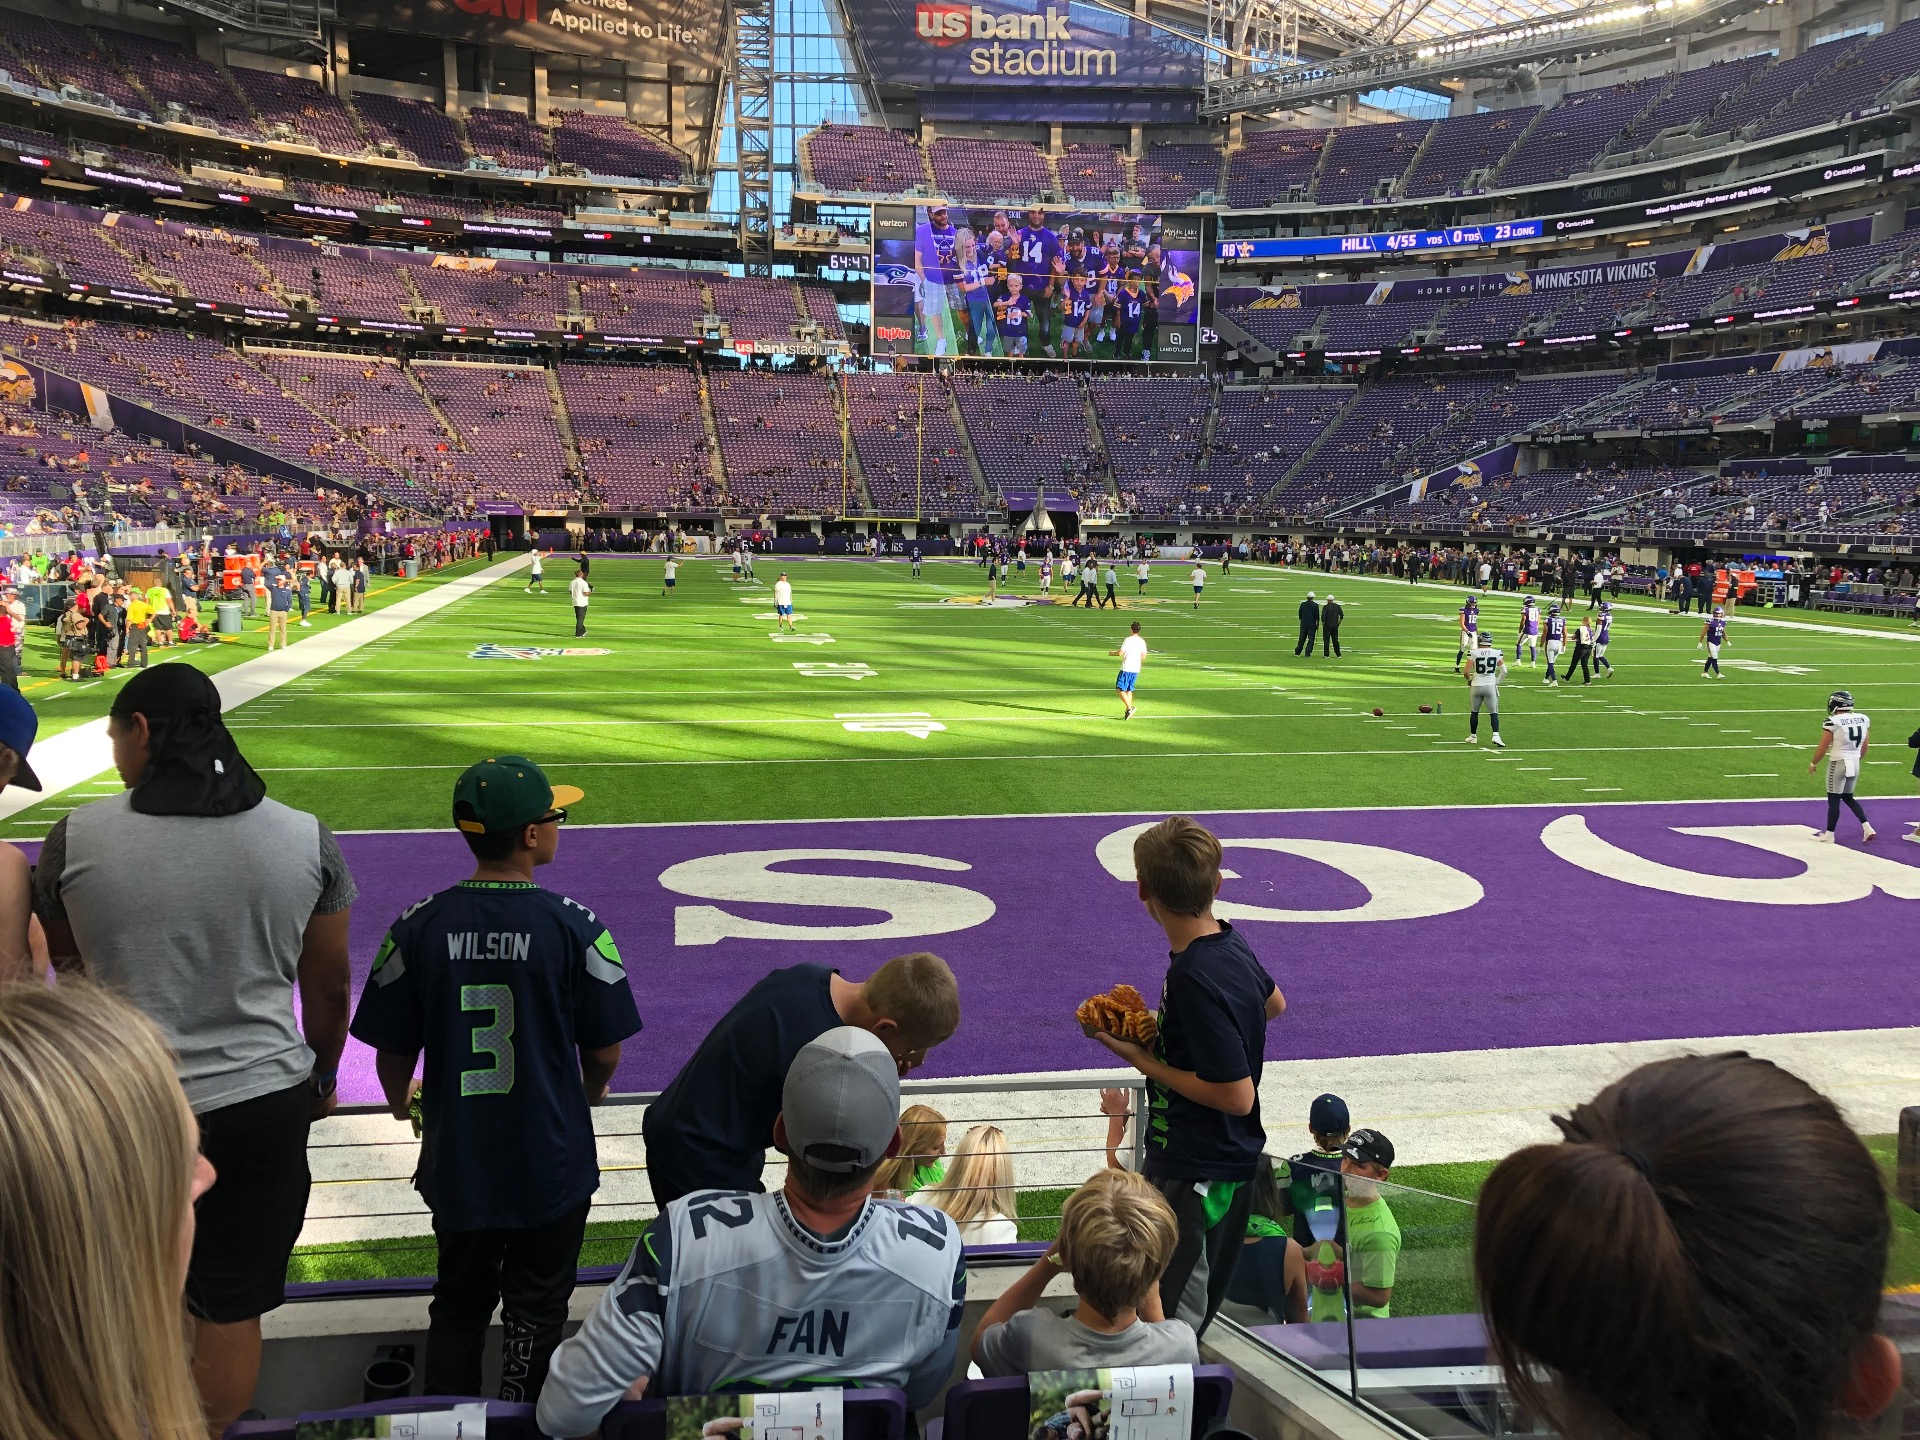 U.S. Bank Stadium Section 143 Row 4